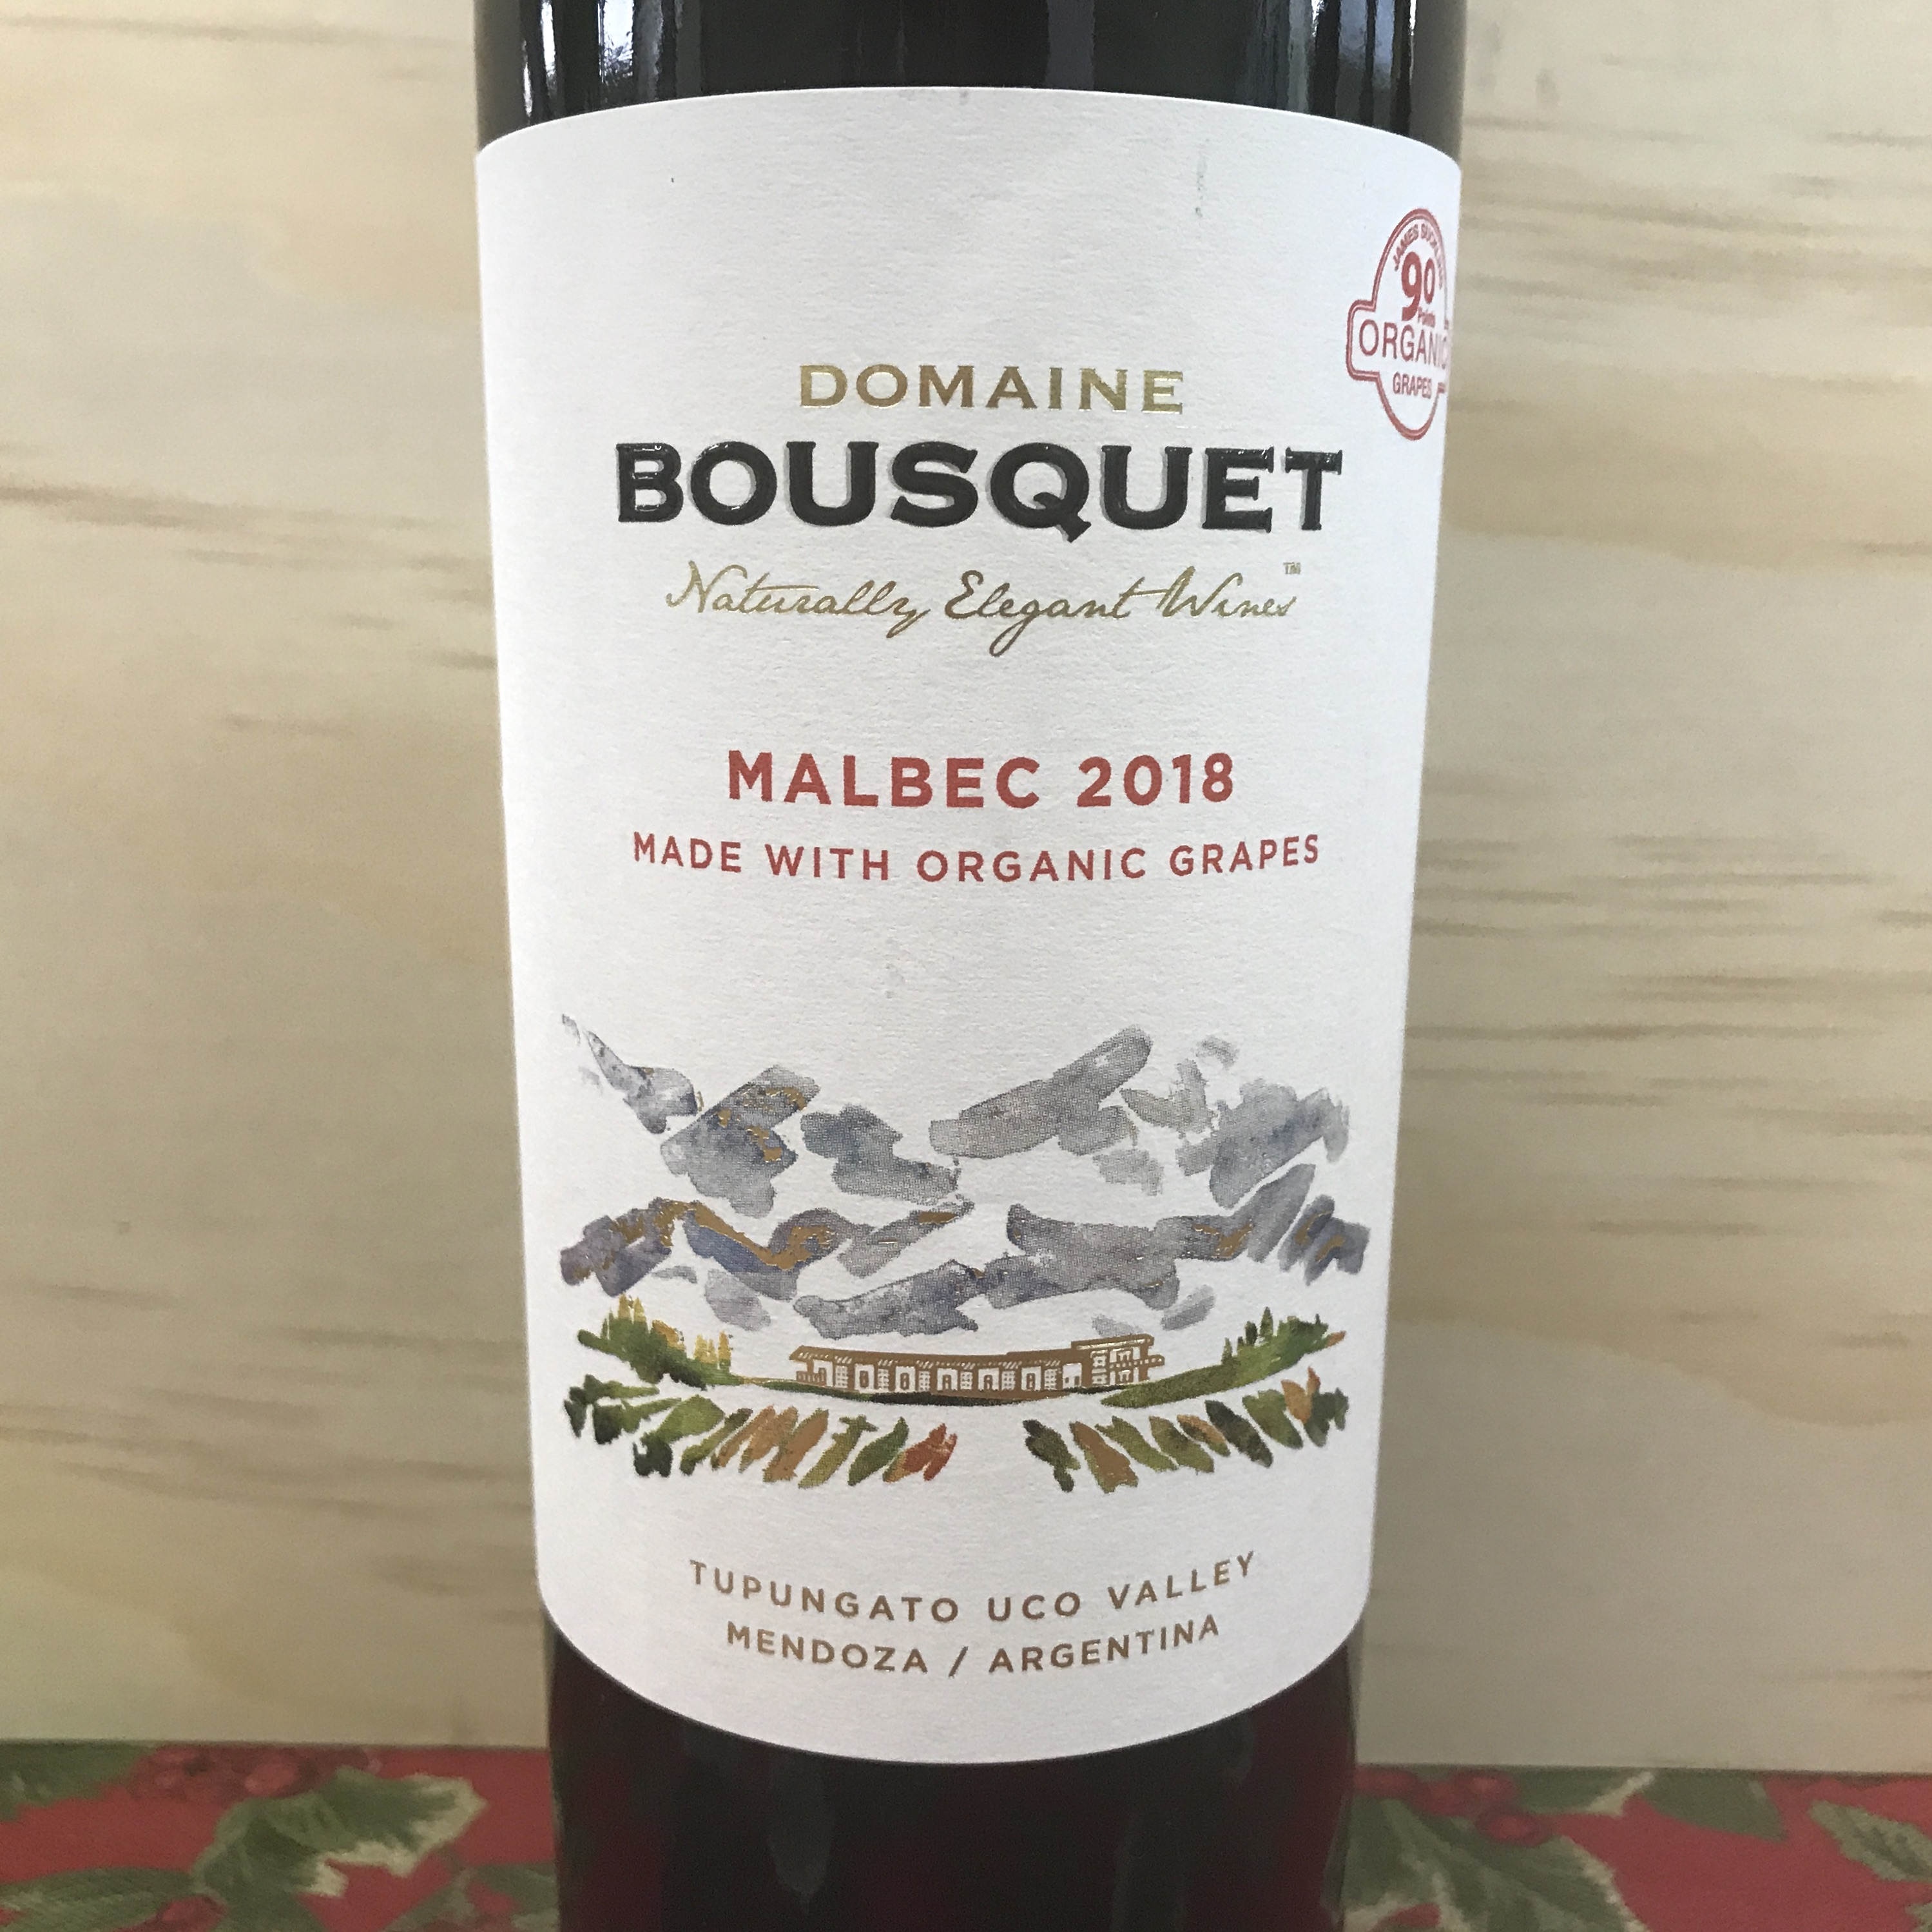 Domaine Bousquet Malbec Organic grapes Uco Valley 2018